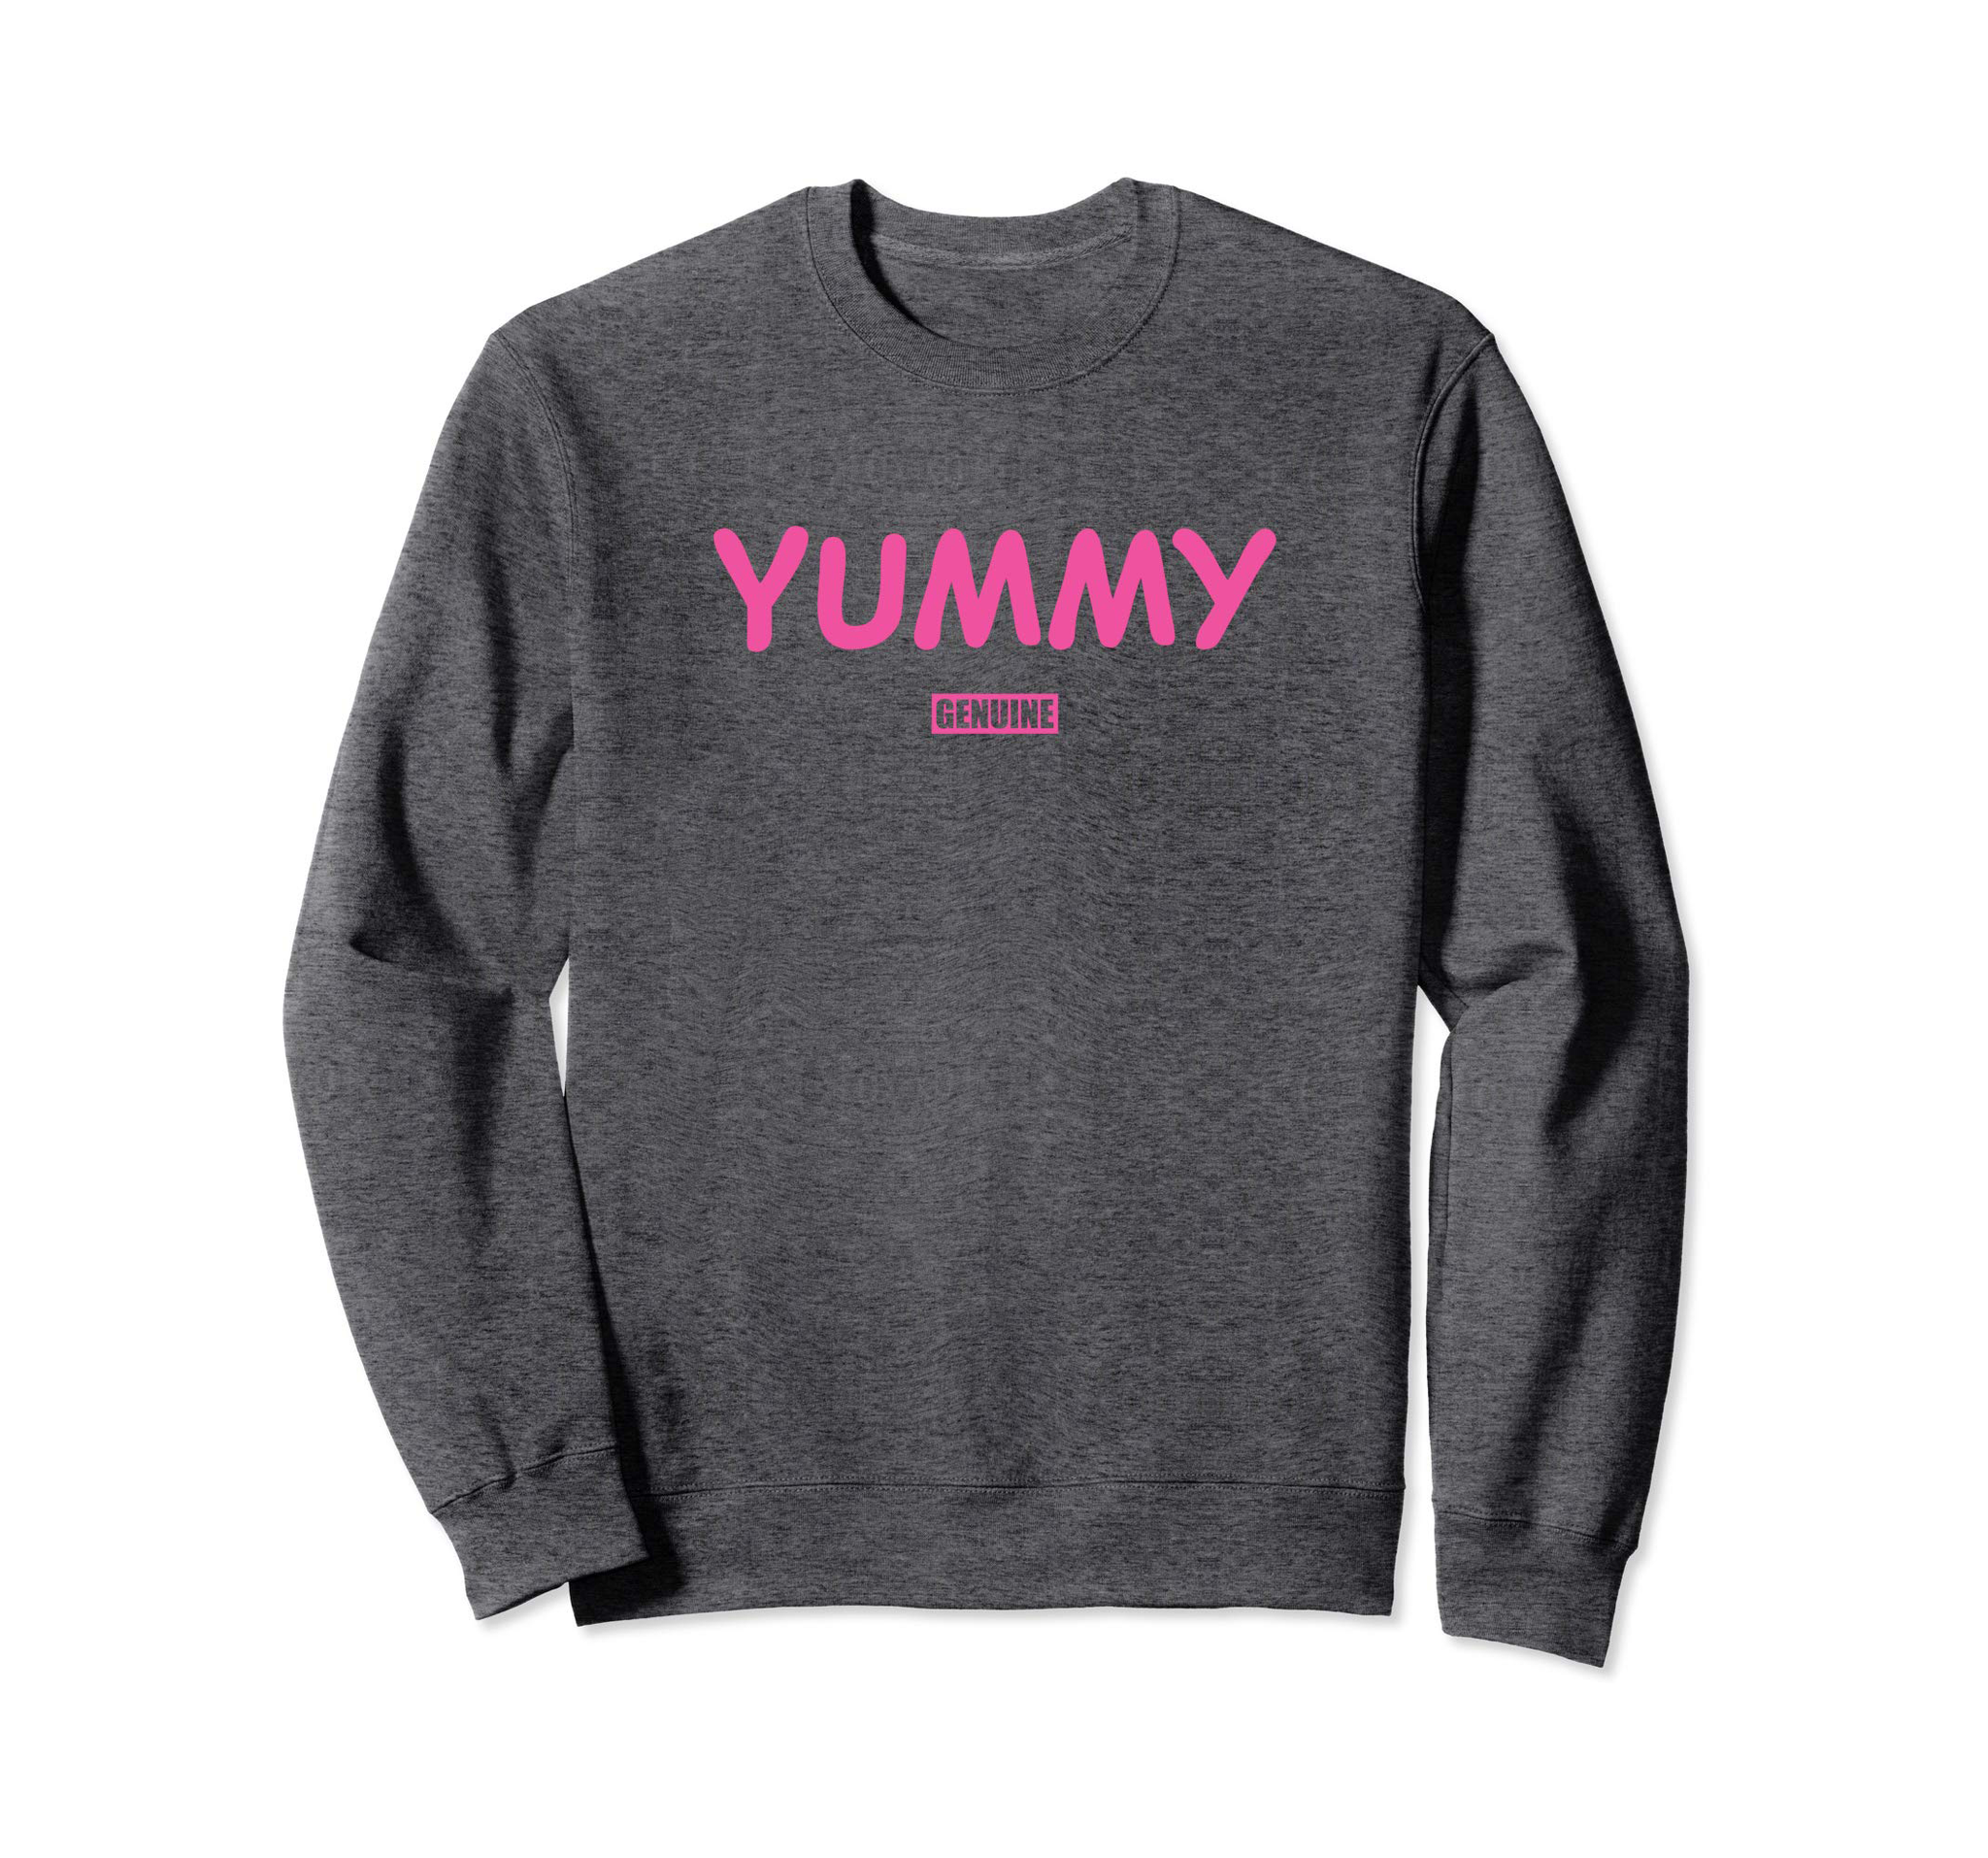 Genuine By Anthony Yummy Sweatshirt - Genuine By Anthony